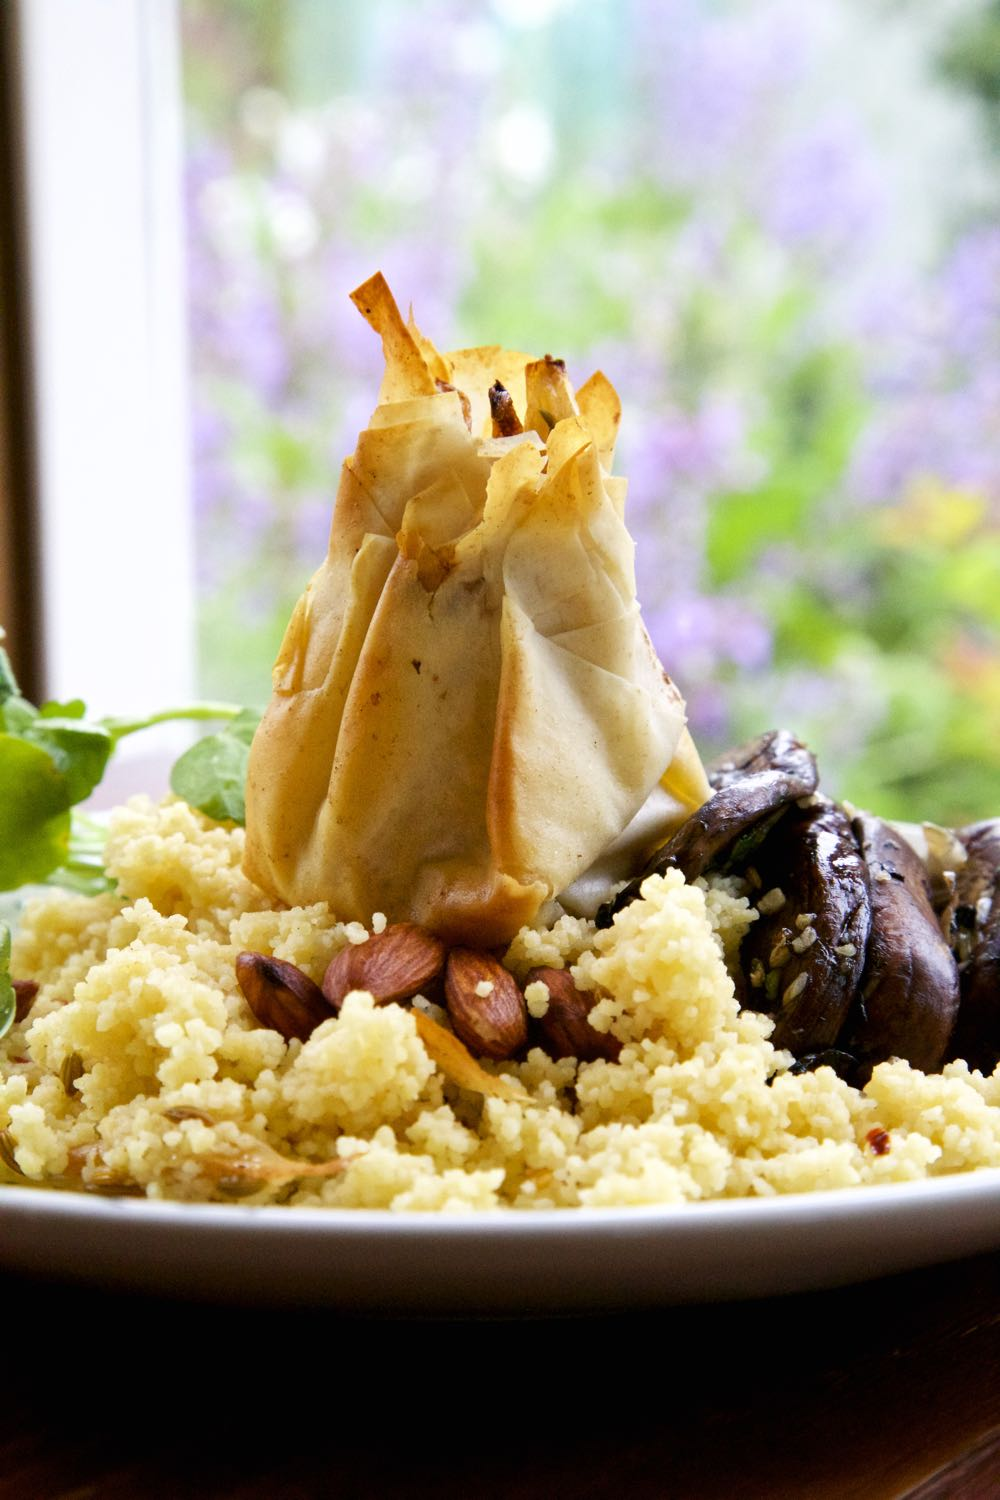 Braised Fennel and Dolcelatte Cheese in crips filo parcels served with almond couscous and portobello mushrooms.